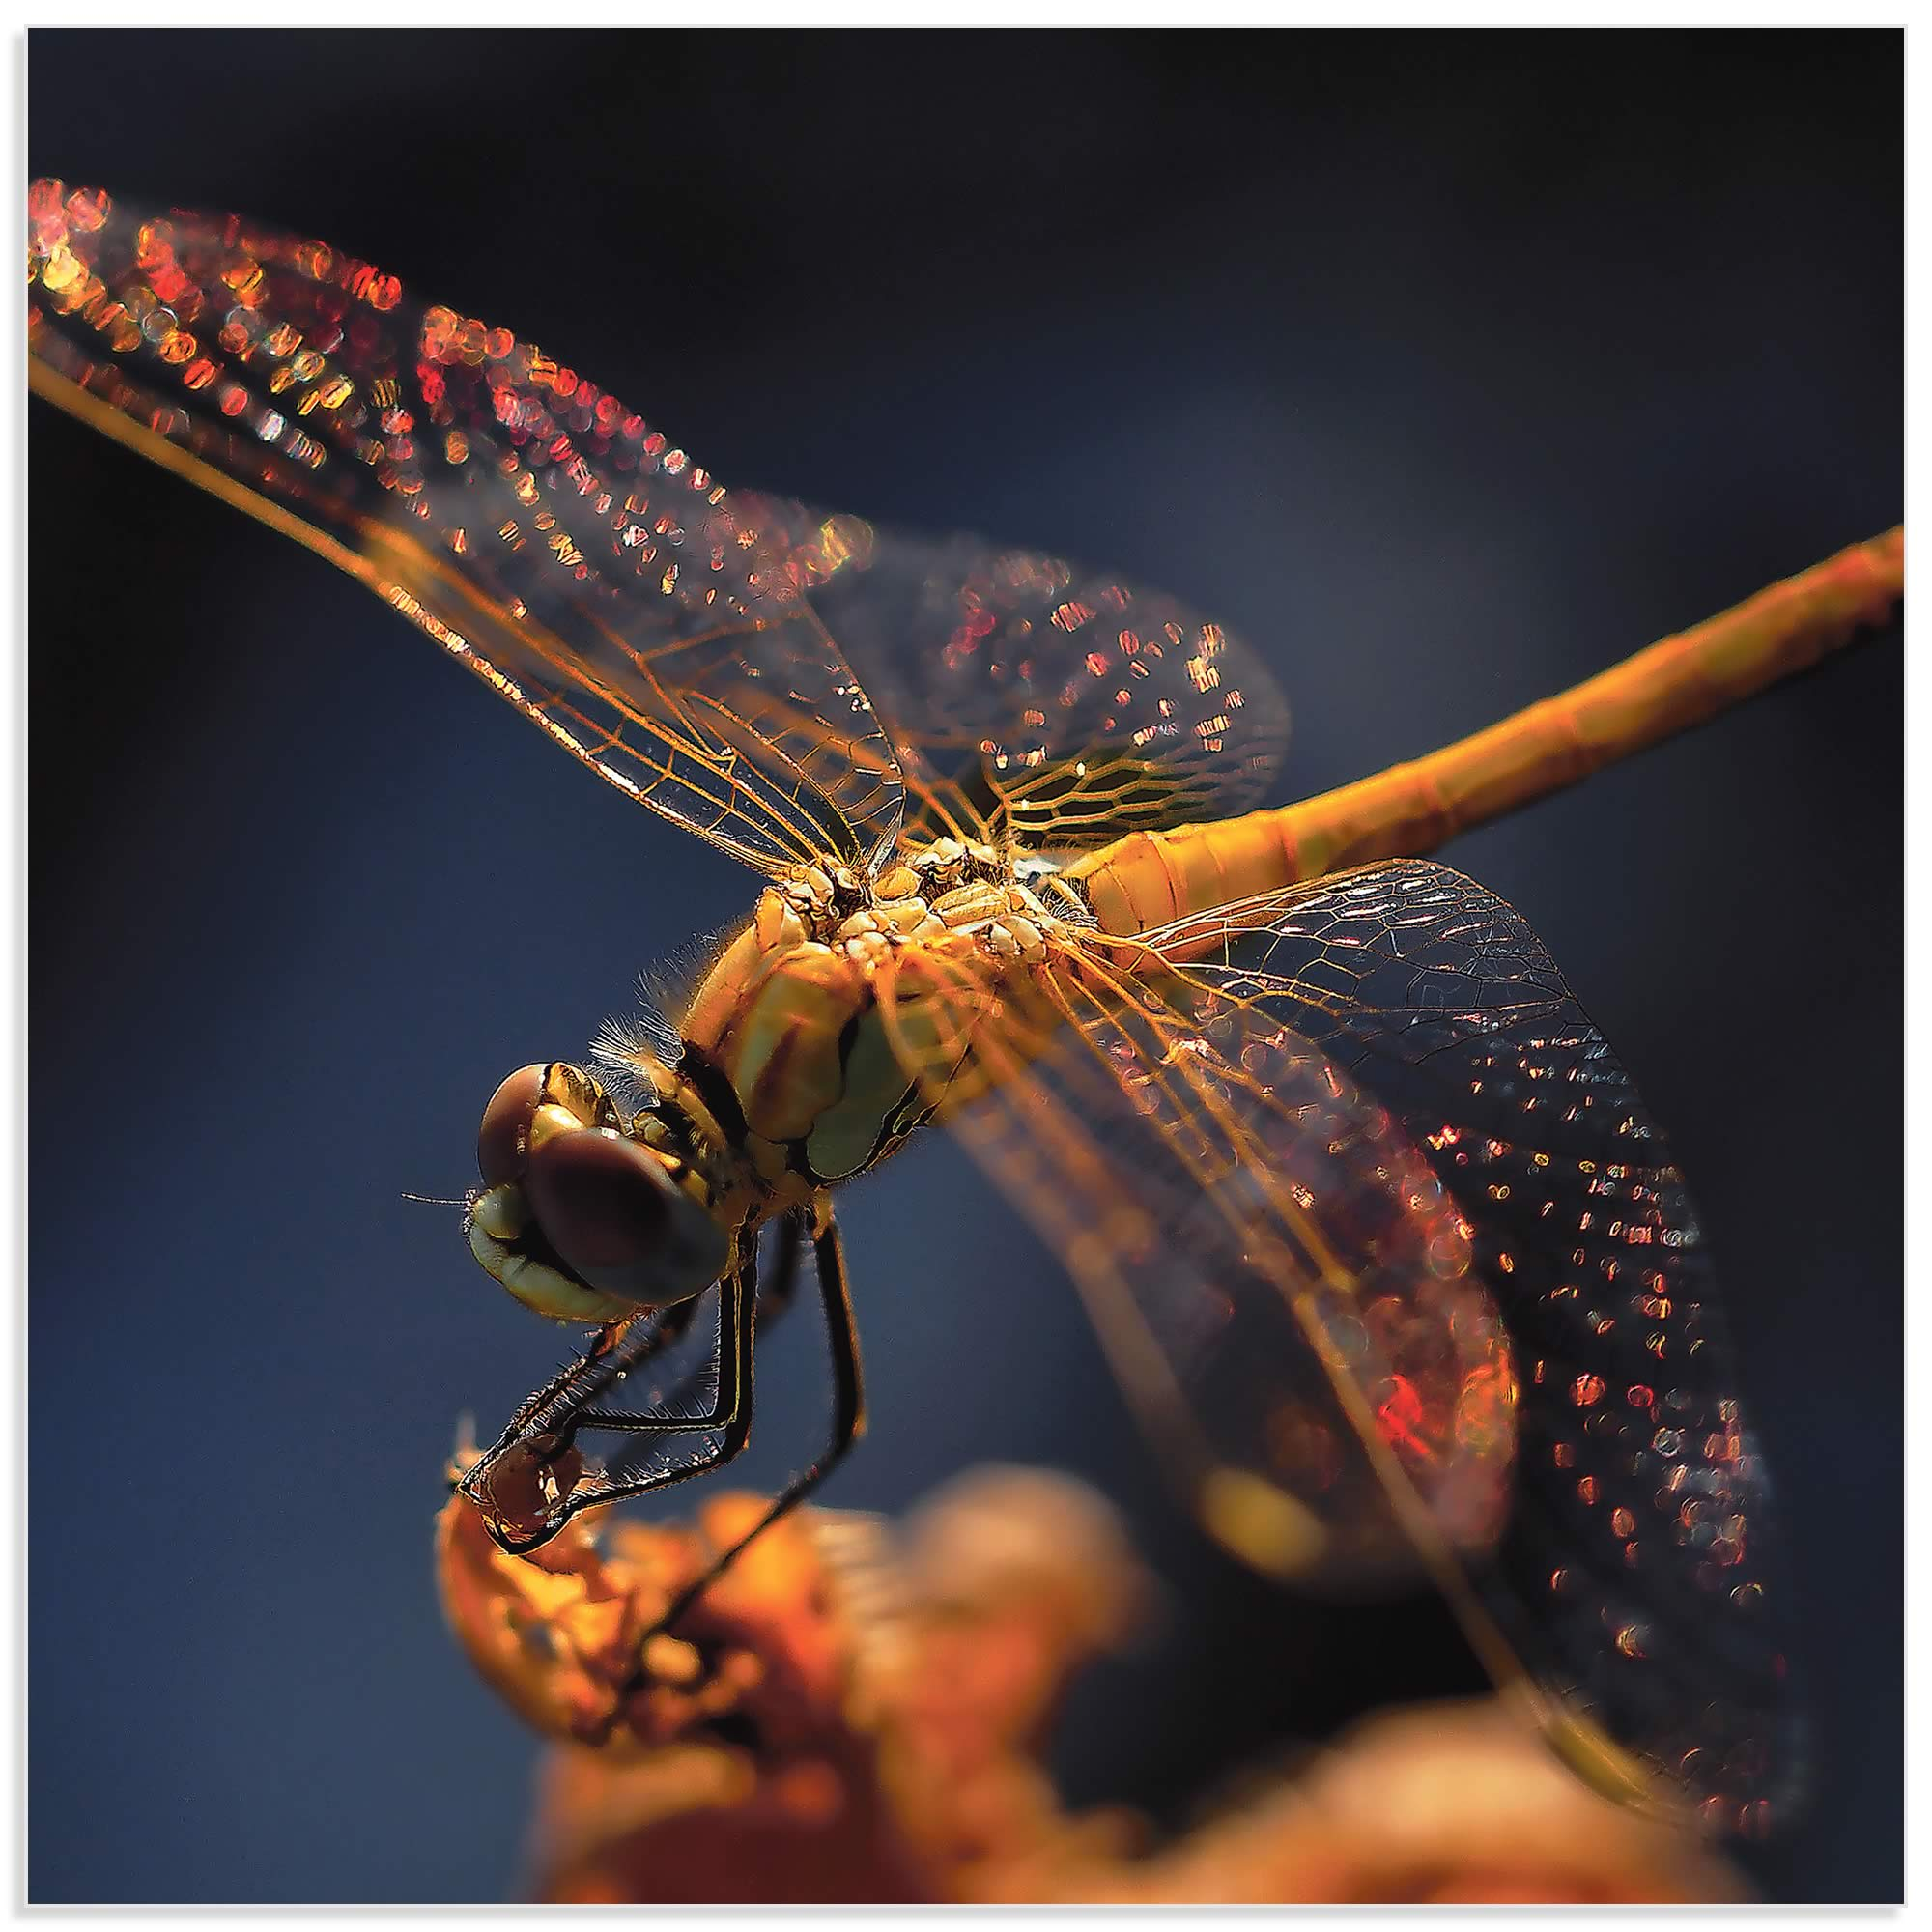 Golden Dragonfly by Thierry Dufour - Dragonfly Wall Art on Metal or Acrylic - Alternate View 2